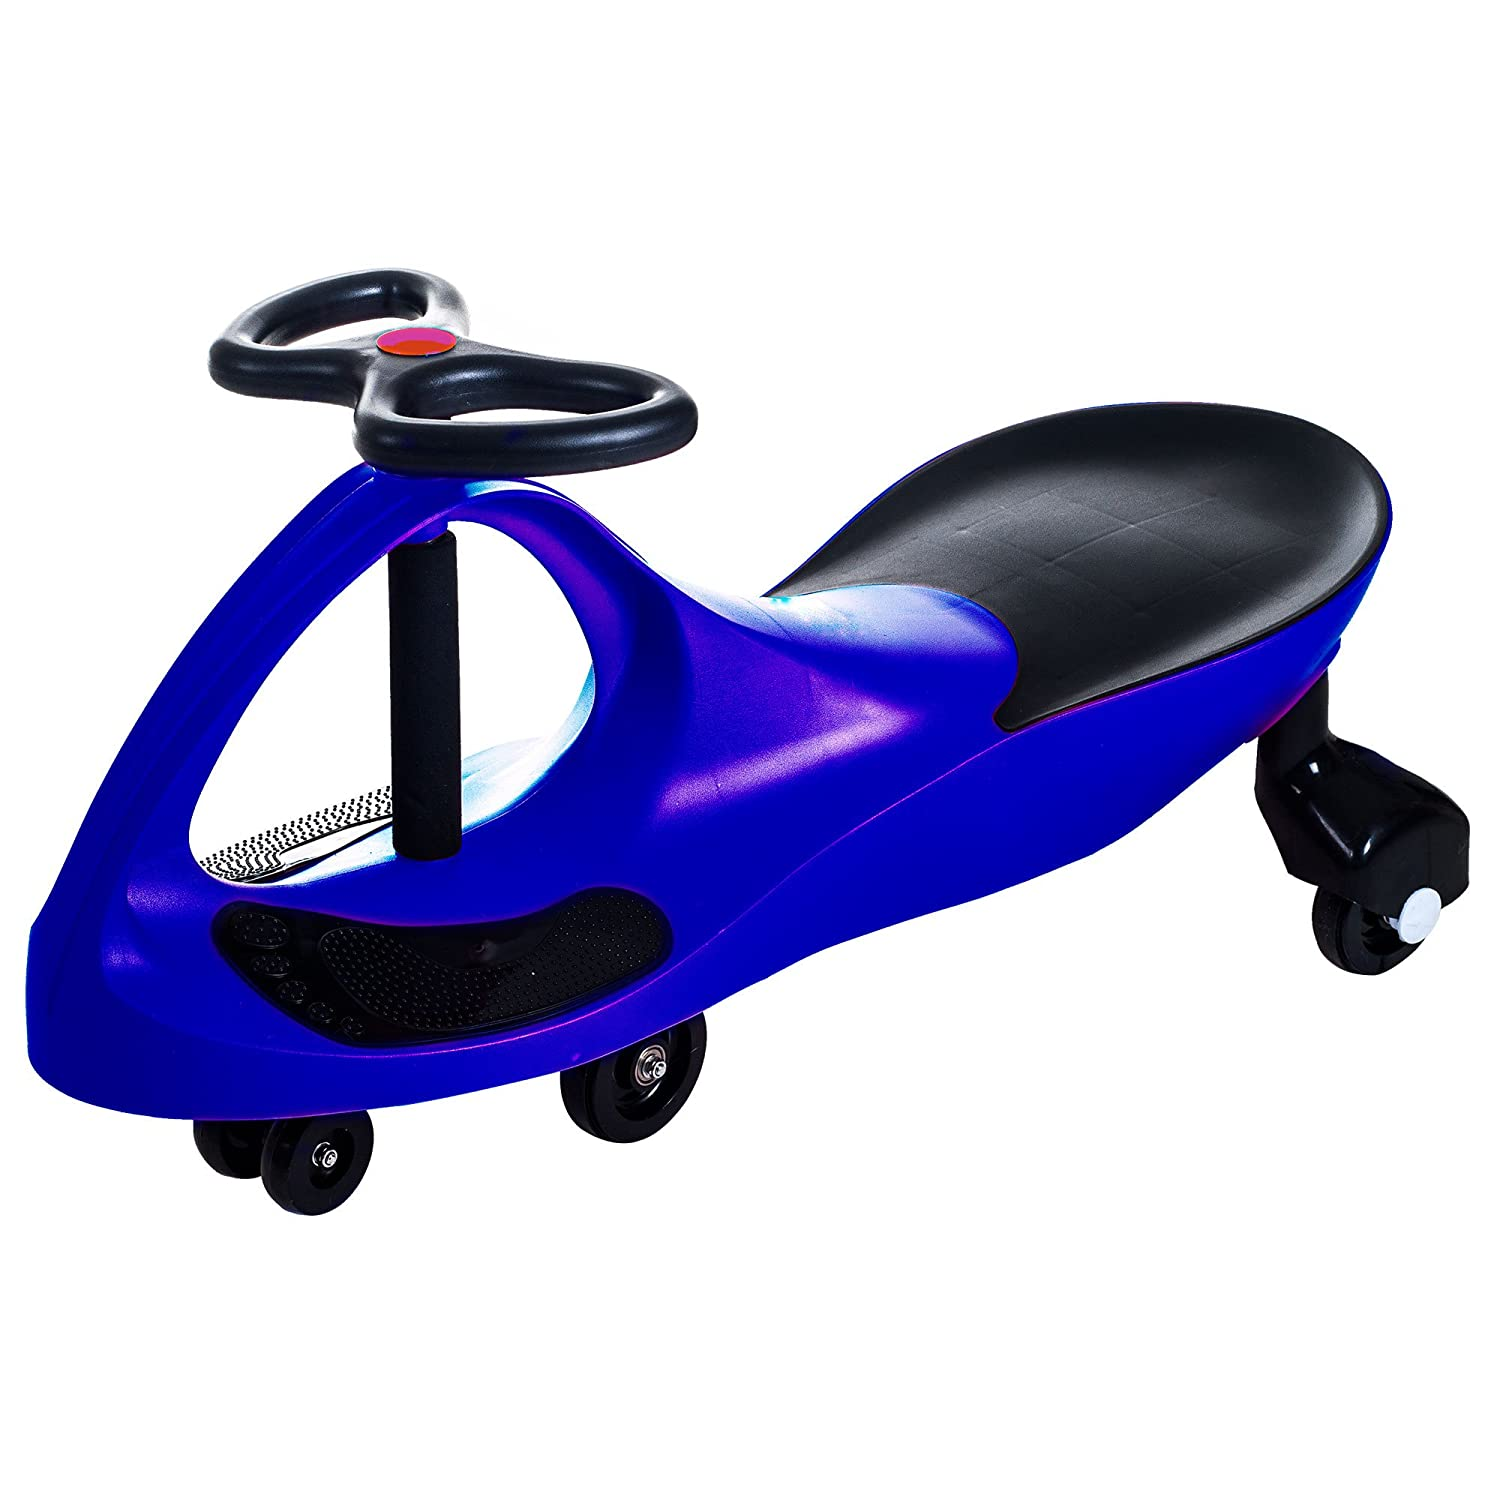 Ride on Toy Ride on Wiggle Car by Lil' Rider Ride on Toys for Boys and Girls 2 Year Old And Up Blue